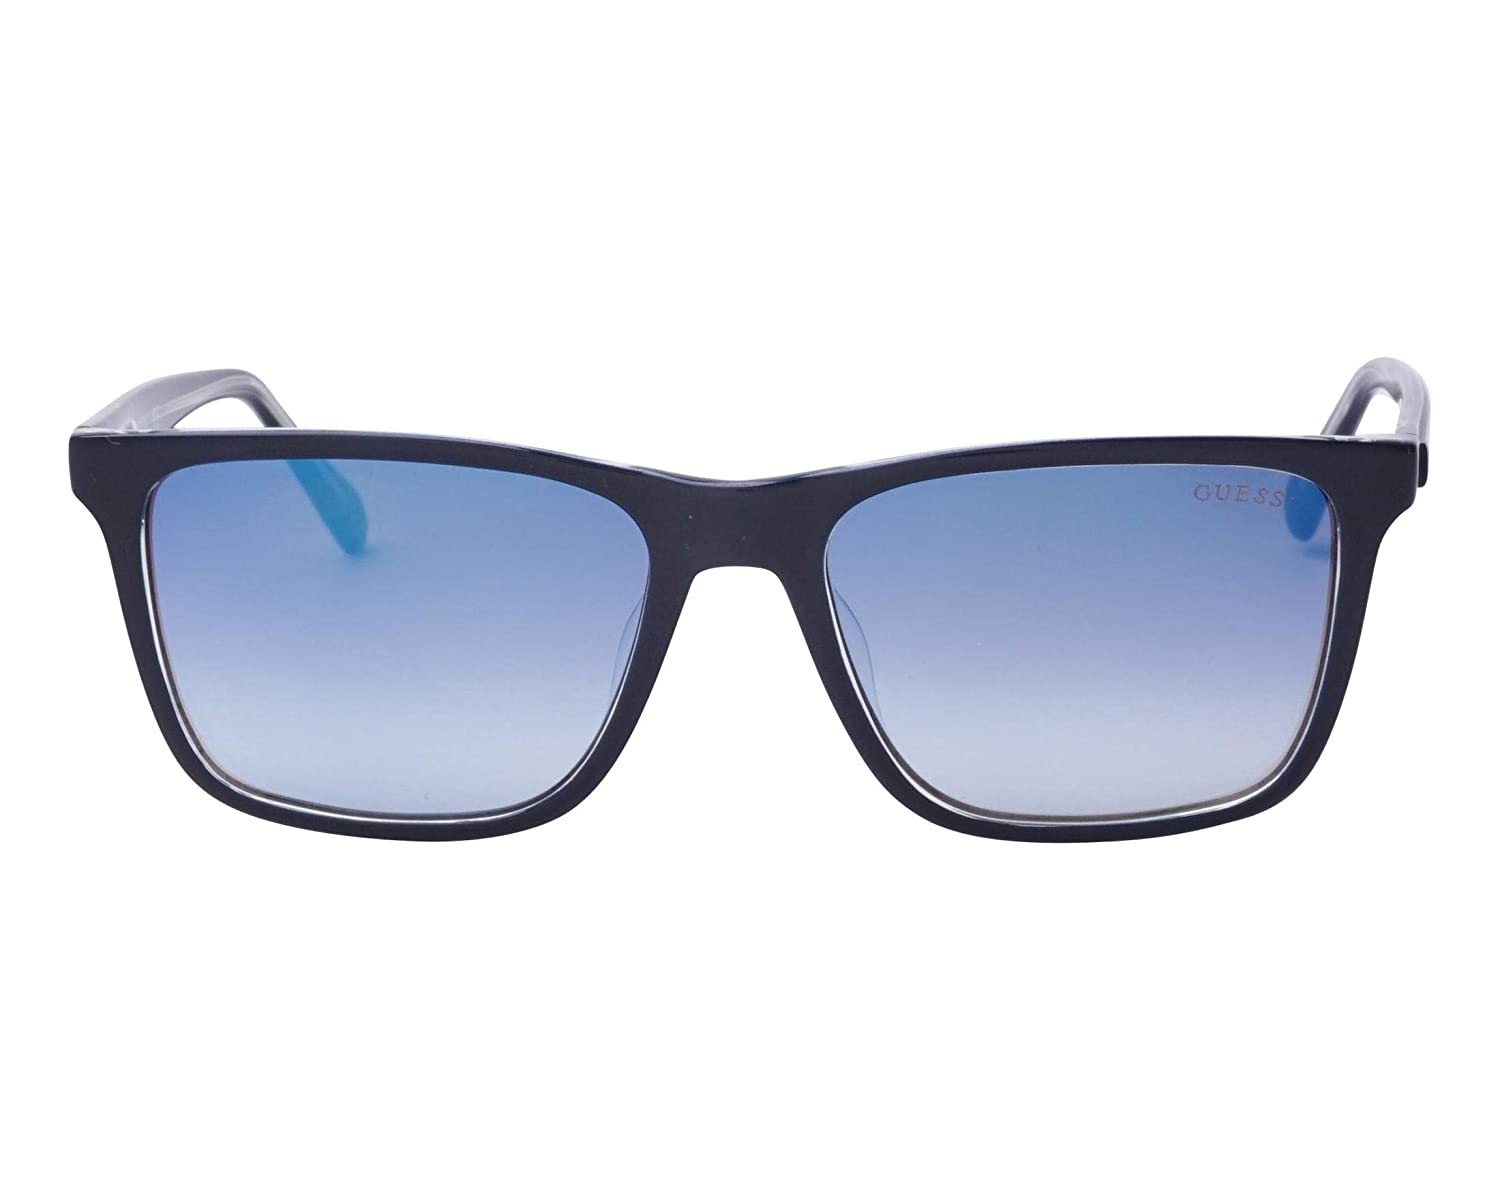 Amazon.com: Gafas de sol Guess (GU-6935 92W), color azul ...